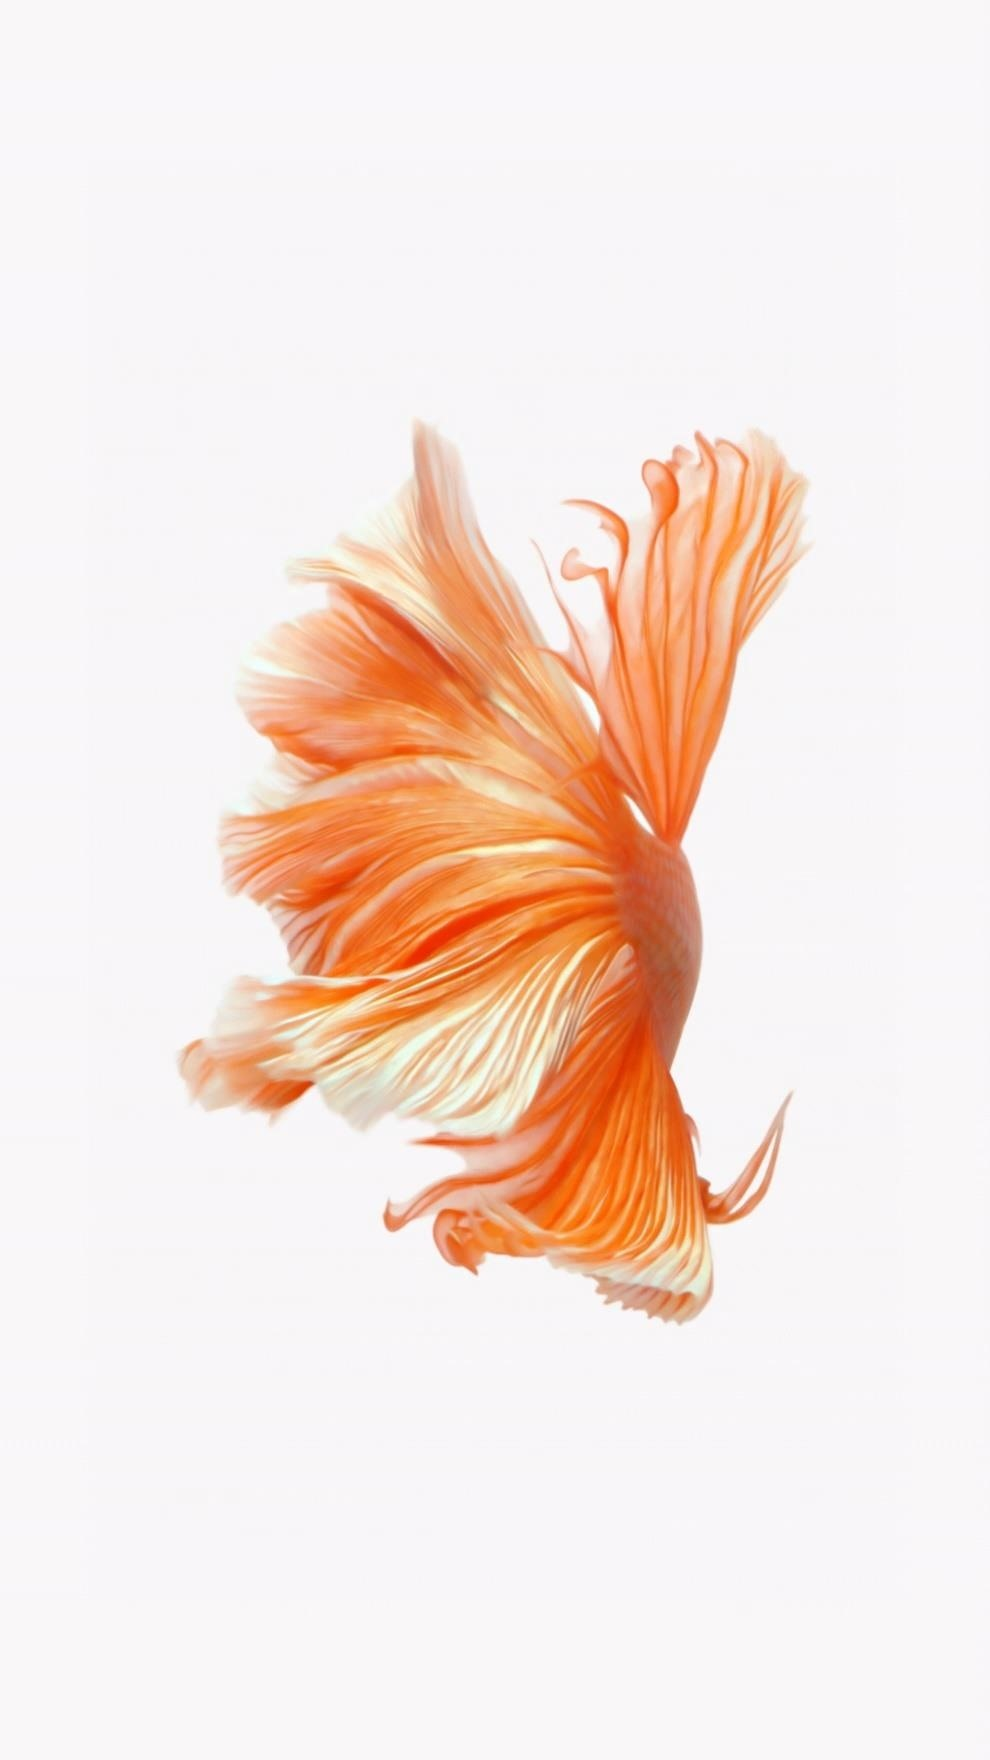 how to get apples live fish wallpapers back on your